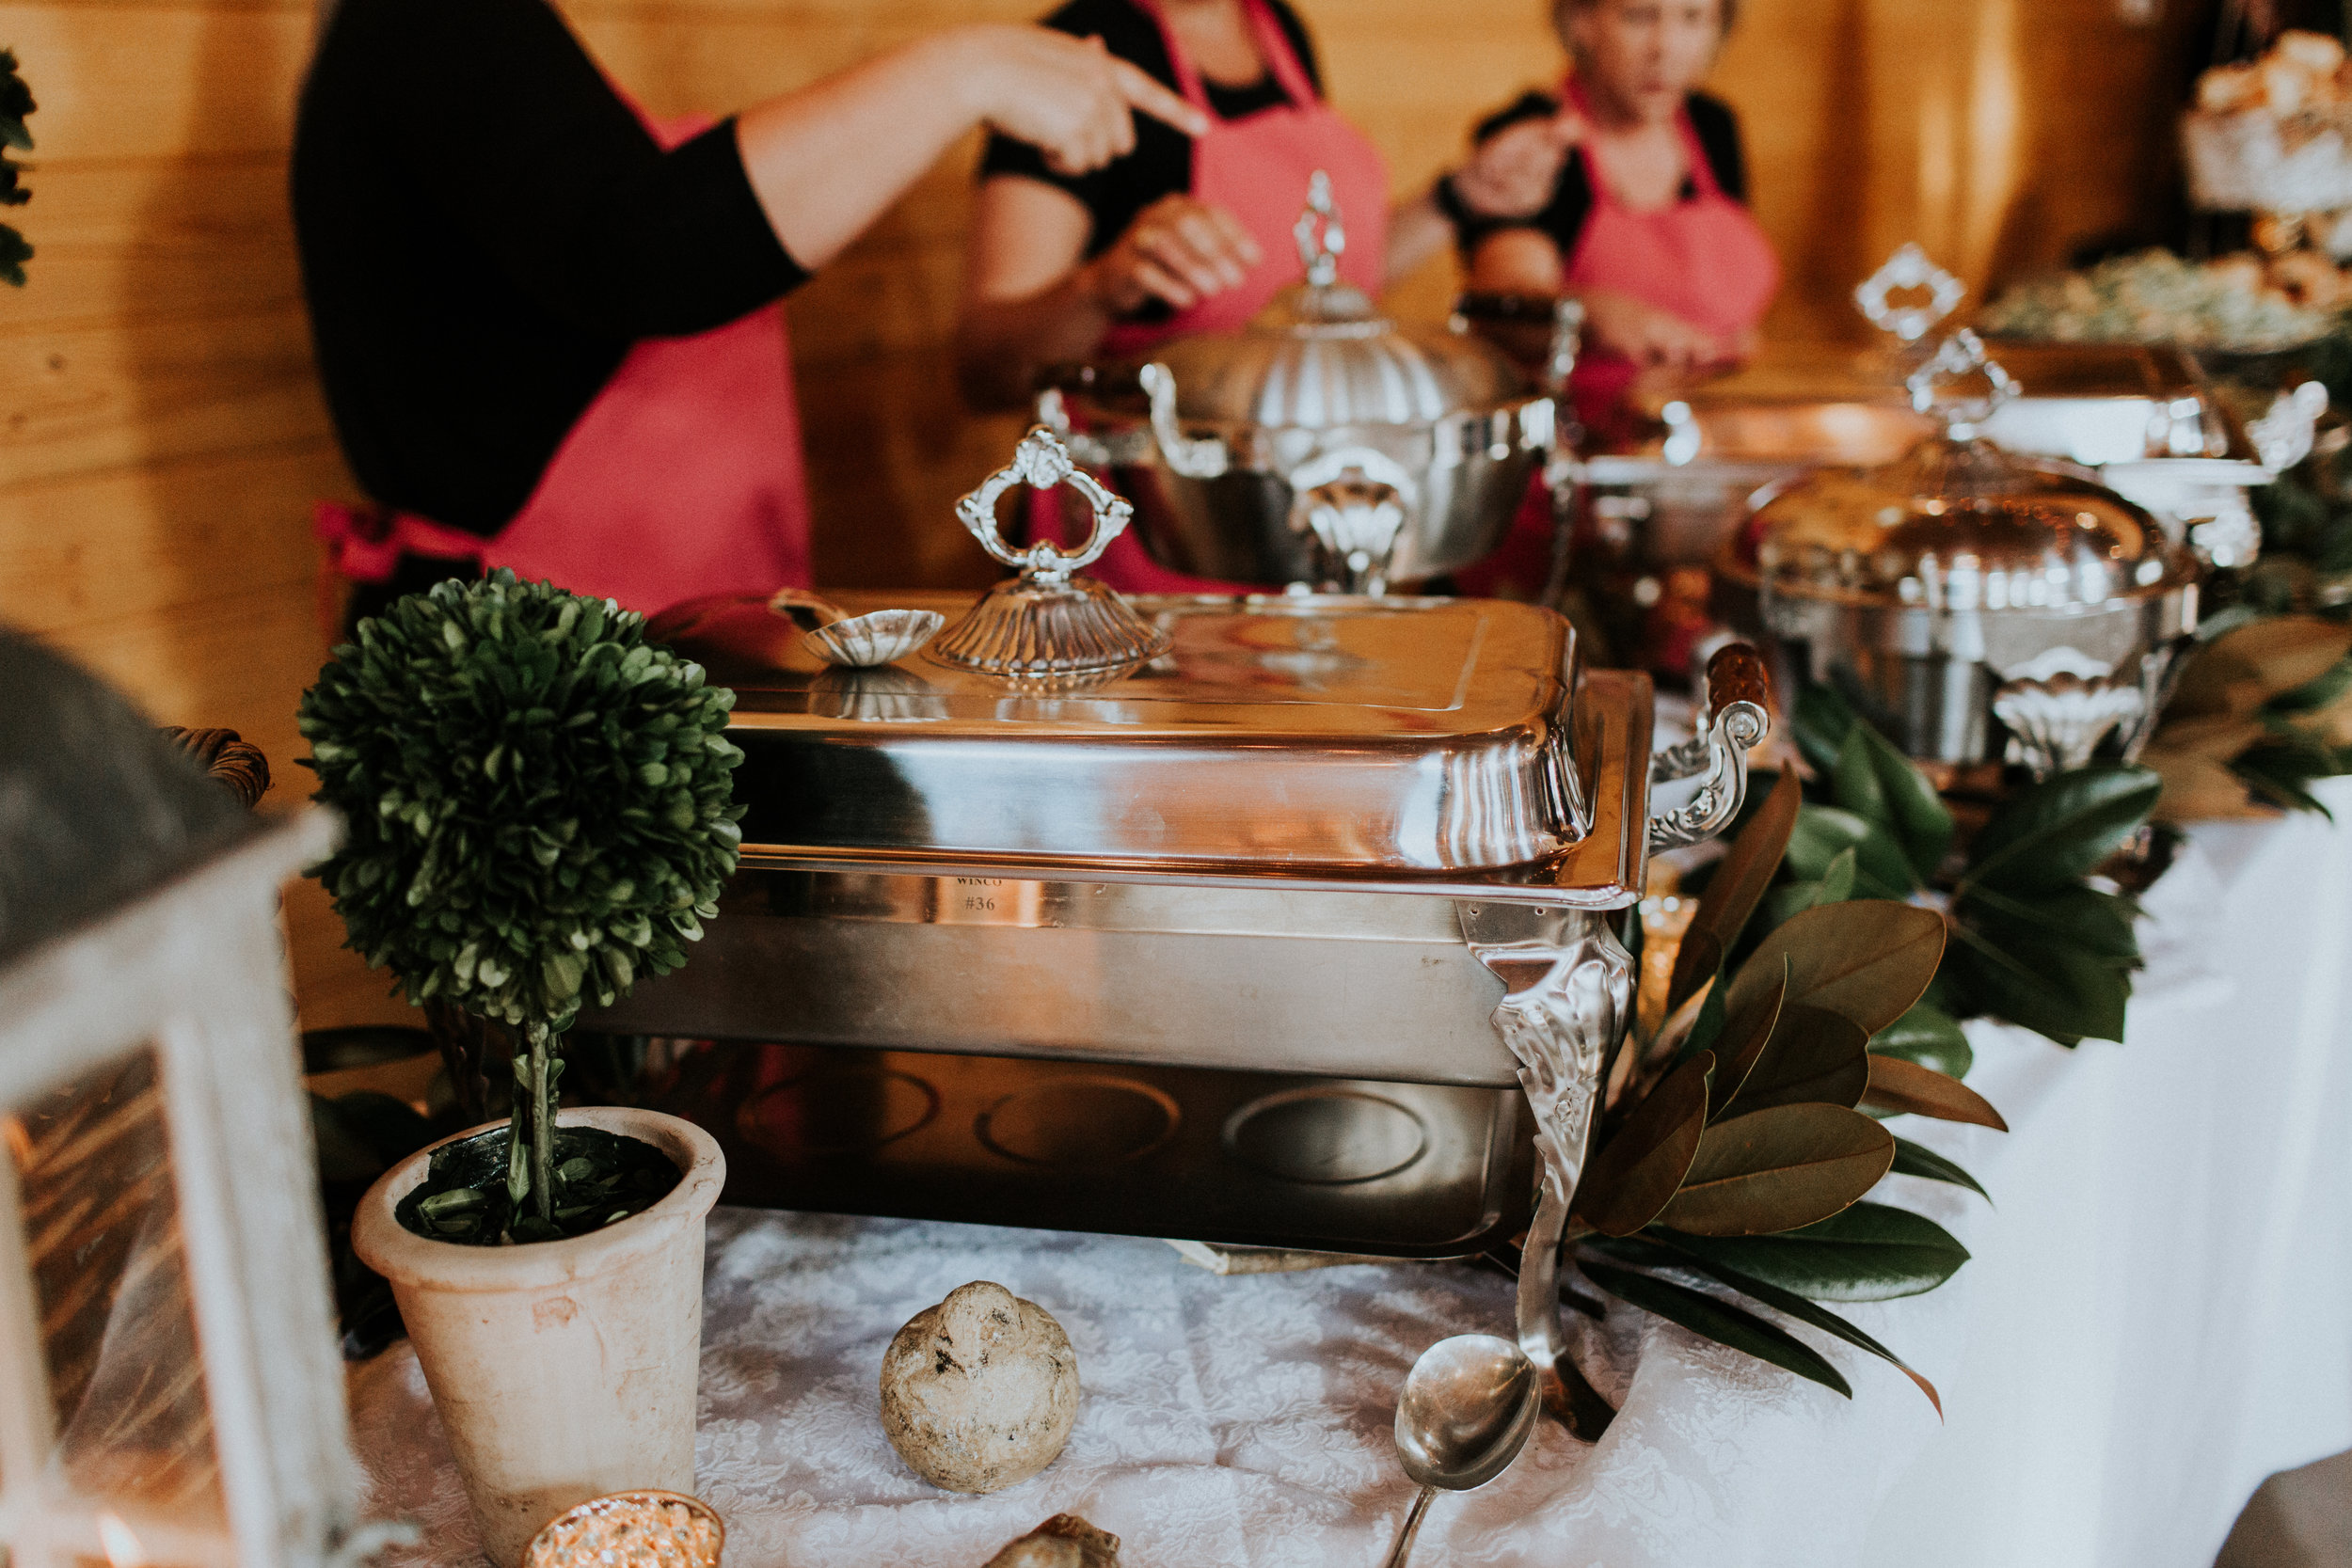 Party Girls Catering team ready to serve a delicious meal. pc Brooke Miller Photography